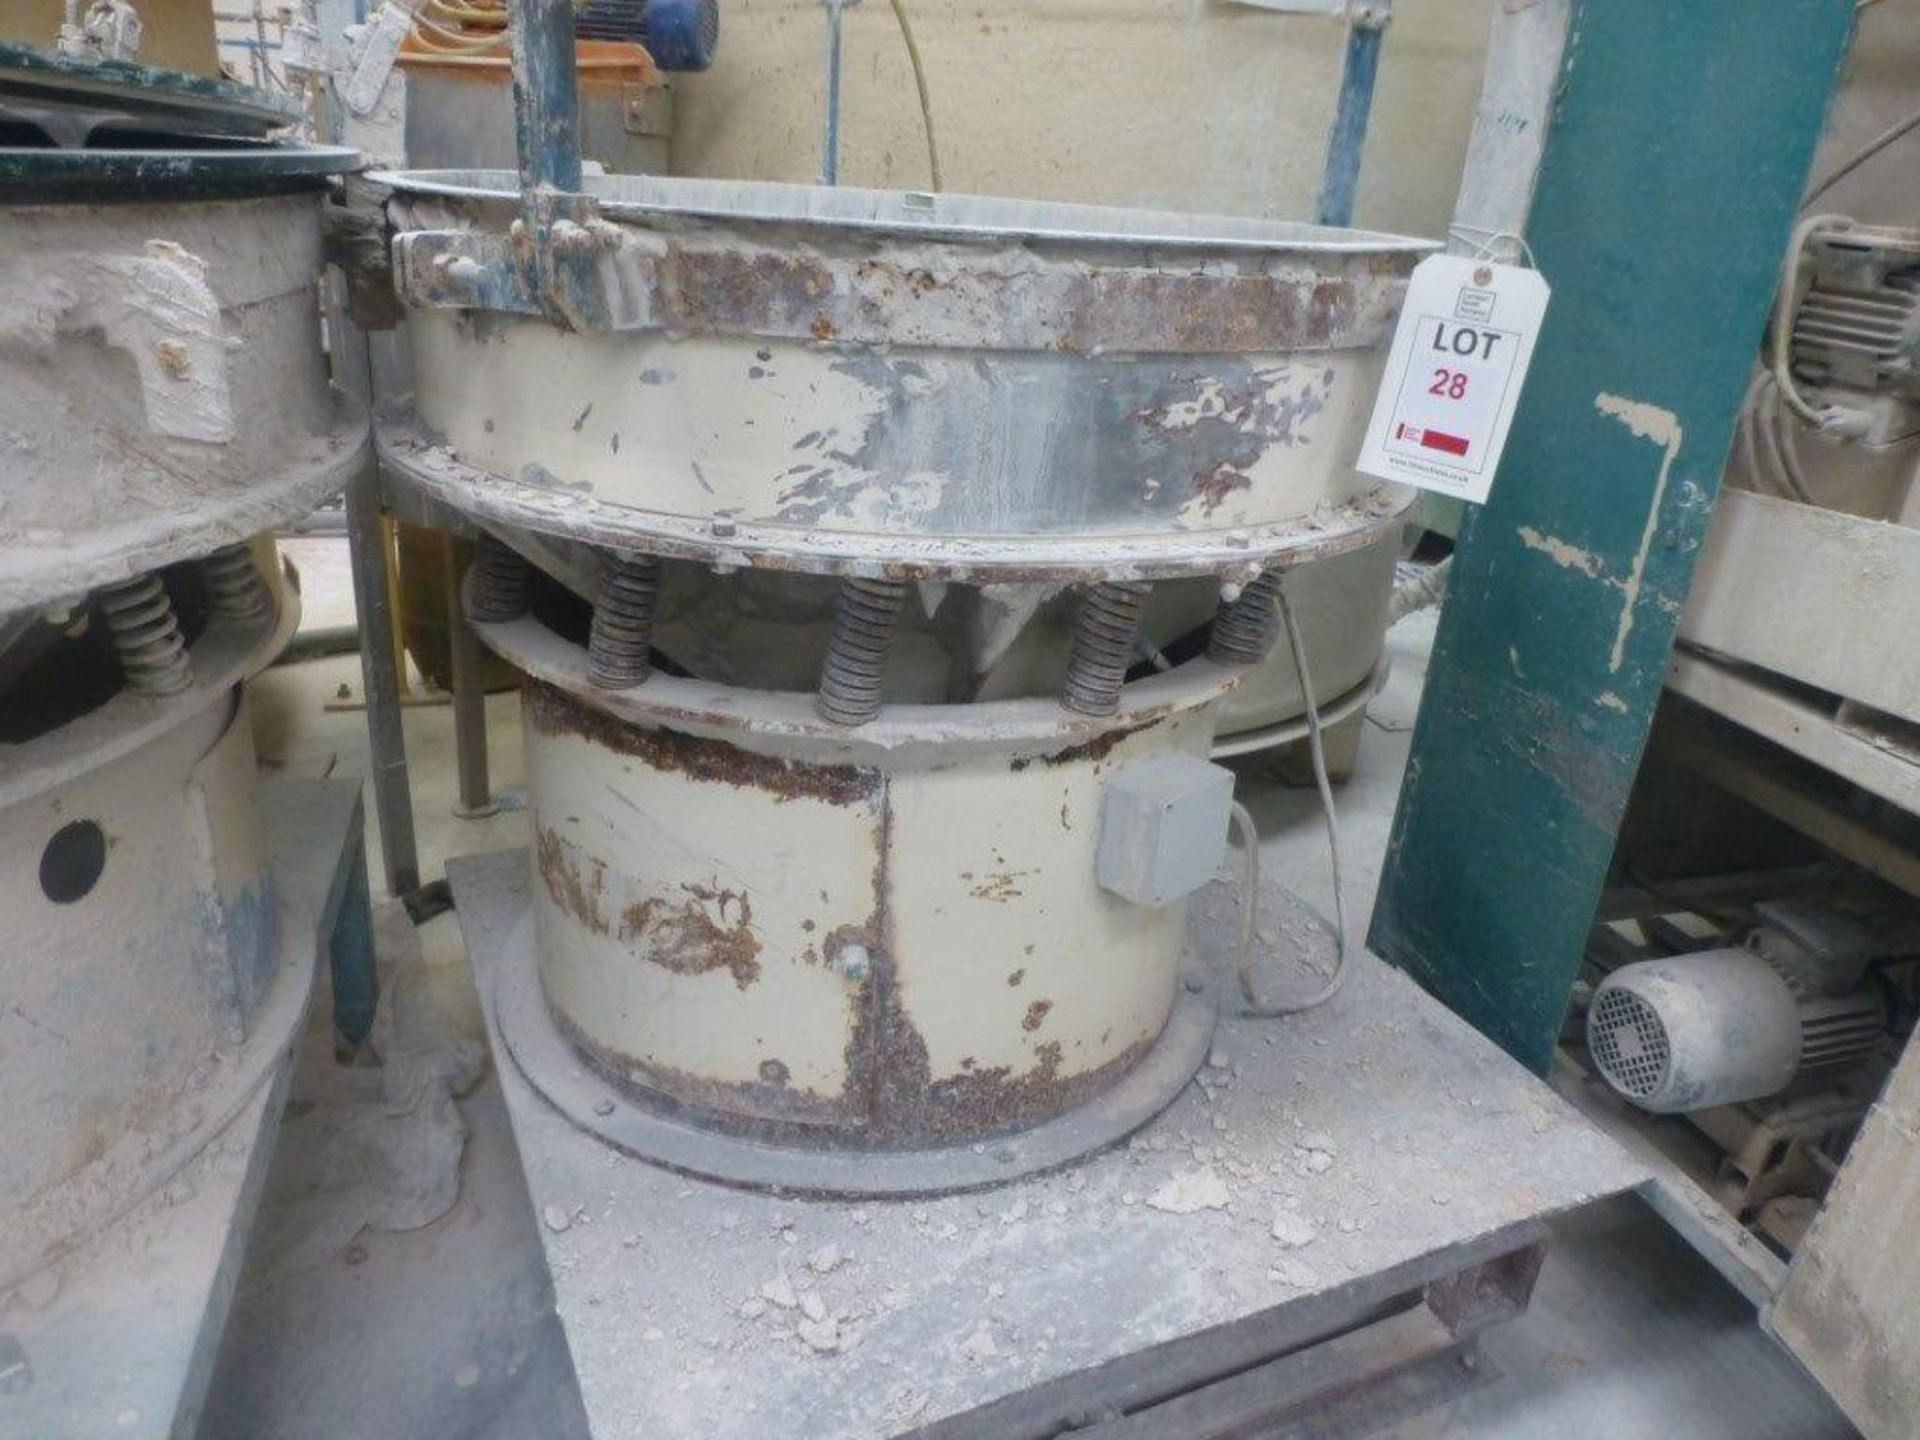 Lot 28 - 900mm diameter vibratory sieve